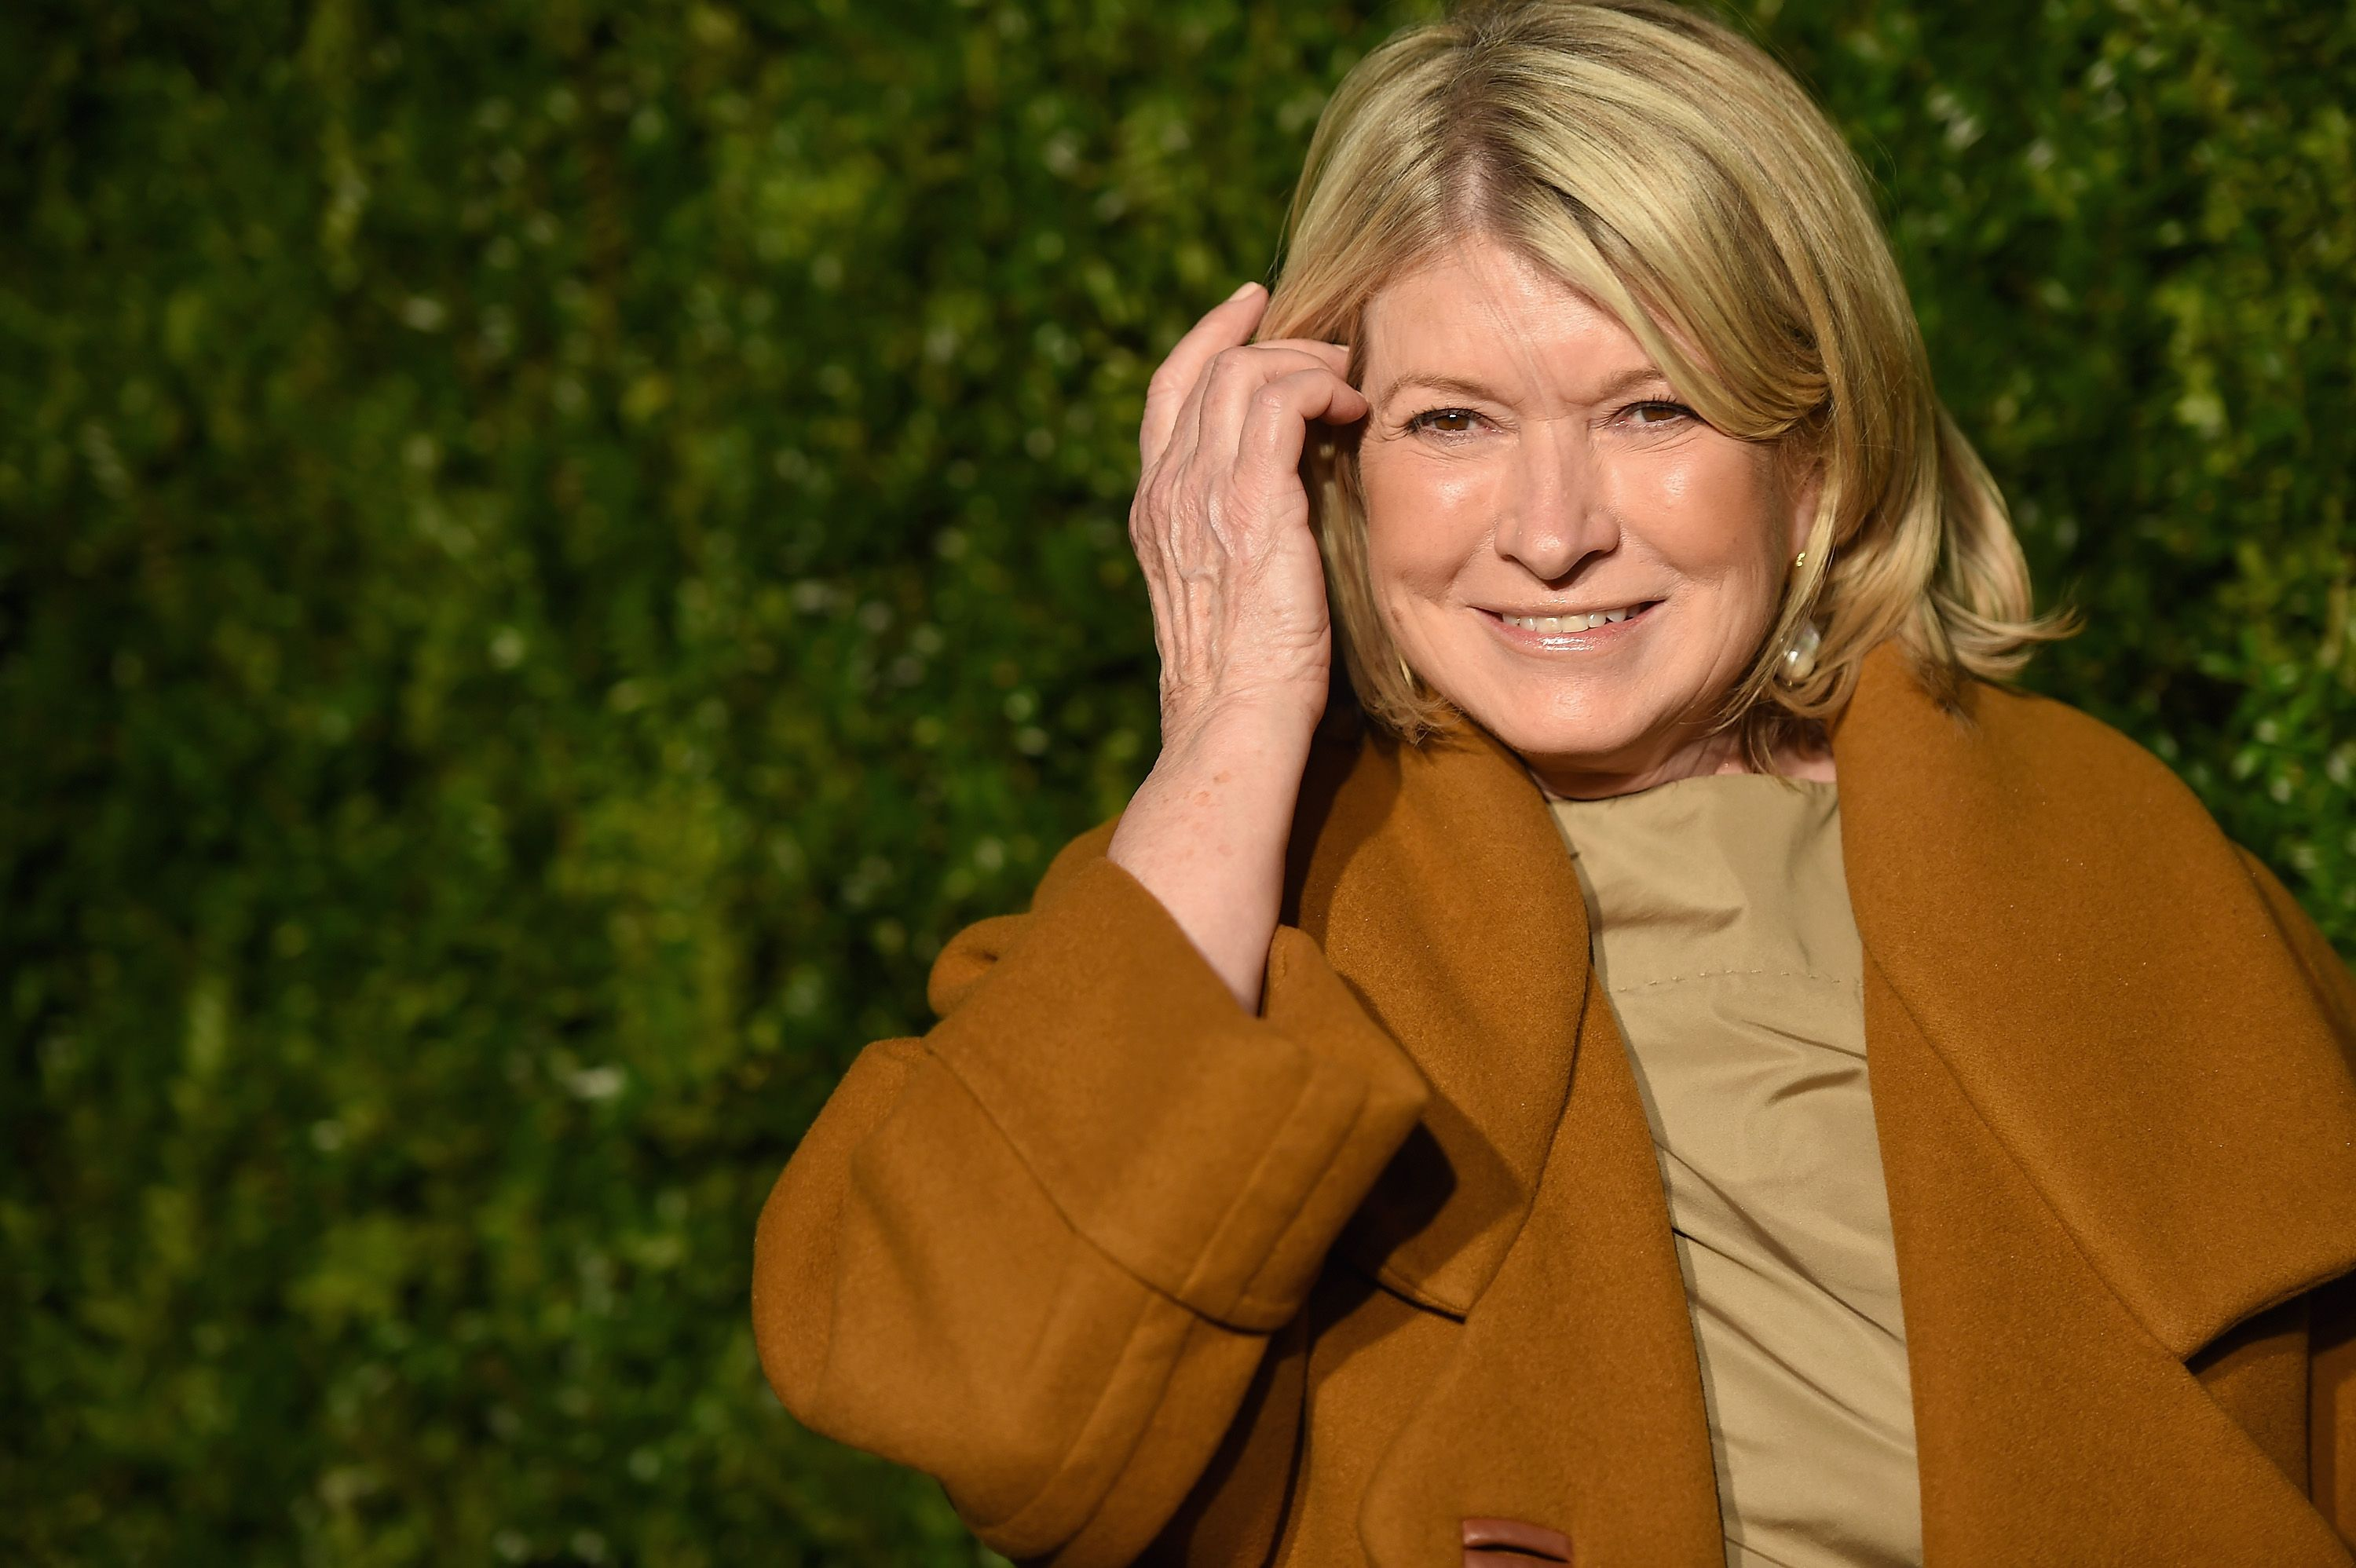 Martha Stewart's 6 Skincare Tips For Looking Ageless